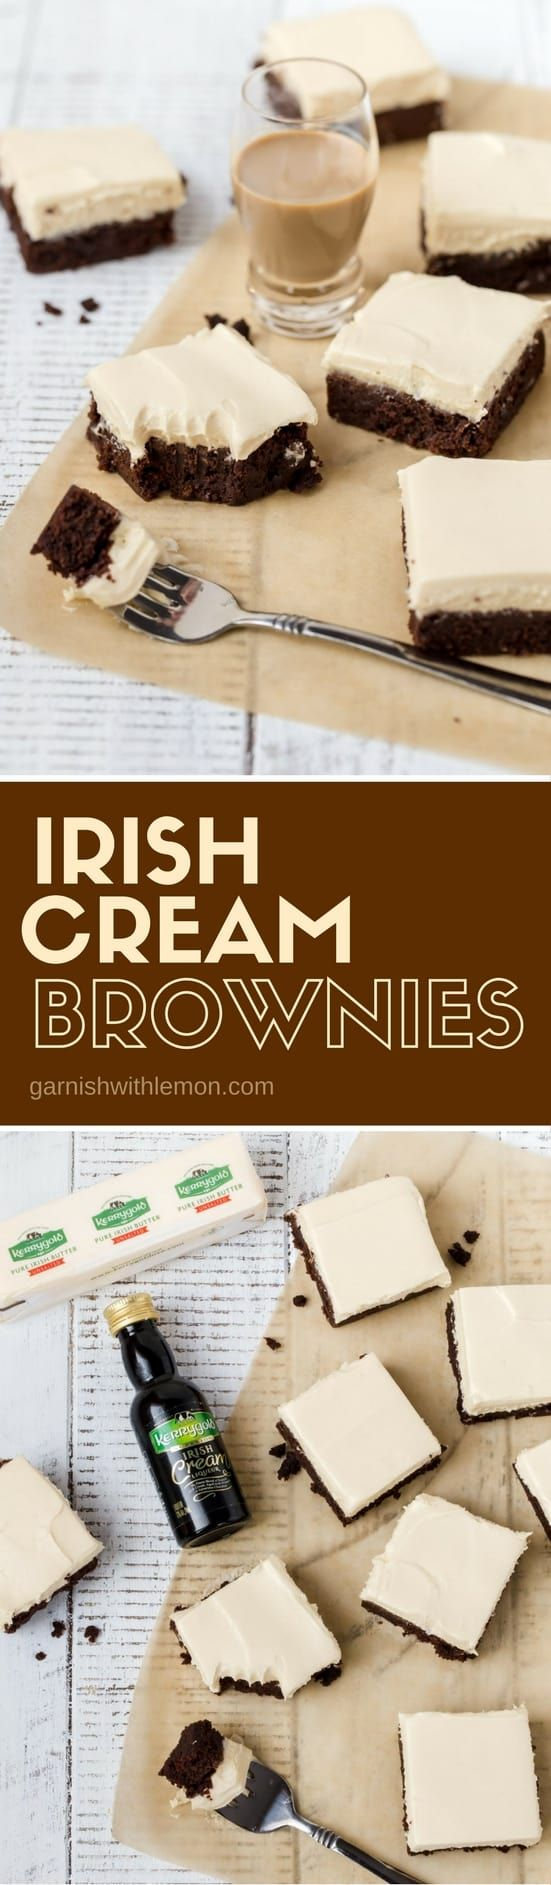 Don\'t settle for plain brownies when you can serve these rich dark chocolate Irish Cream Brownies instead. One bite and you will be in heaven. #brownies #irishcream #desserts #chocolate